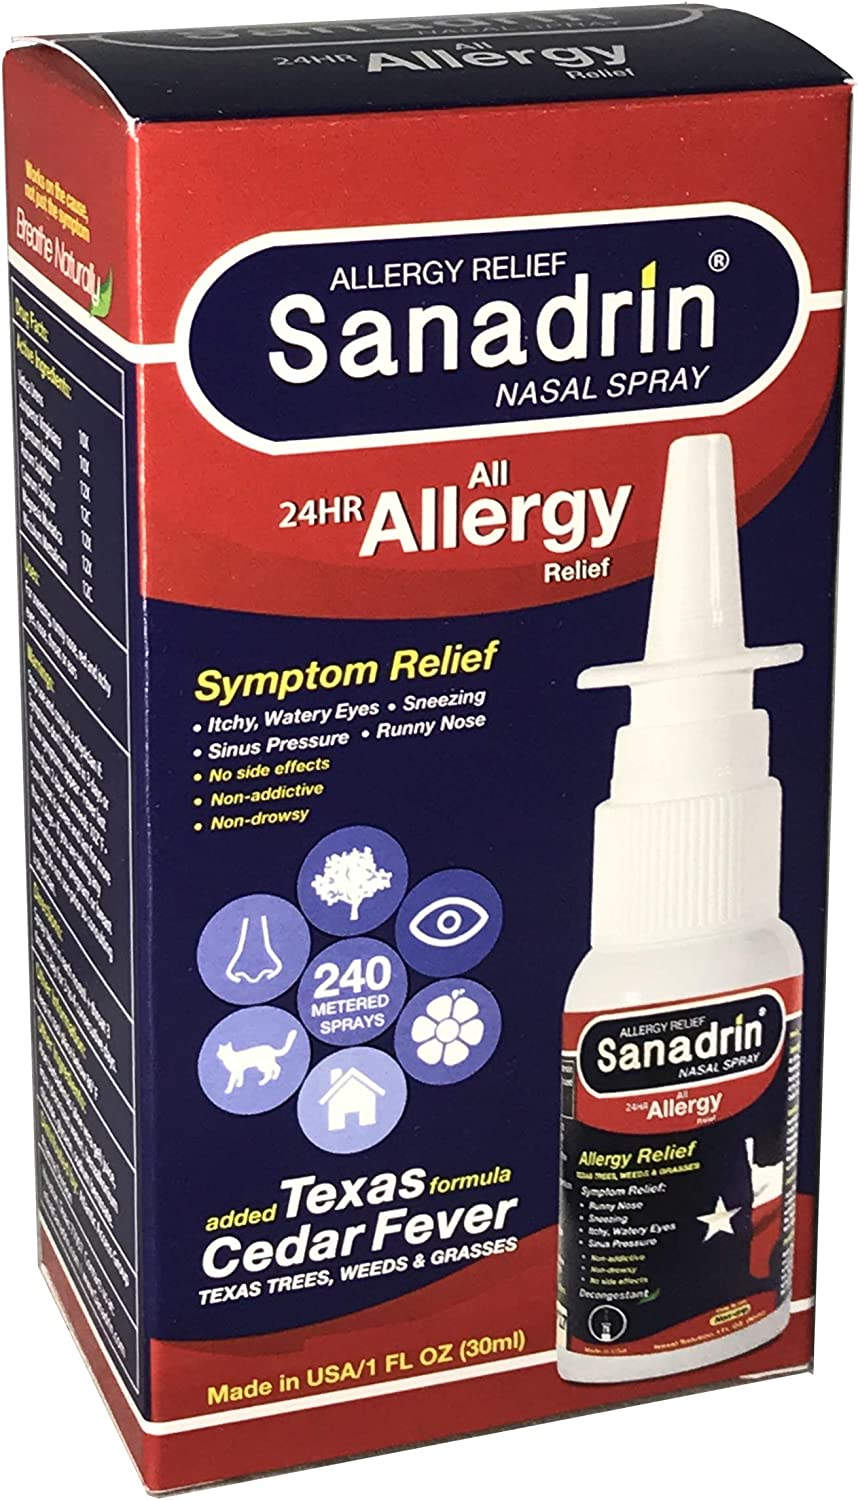 Sanadrin 24hr Allergy Relief Medicine - Texas Cedar Fever - Sneezing - Itchy, Watery Eyes - Sinus Pressure - Runny Nose - Full Prescription Strength - Boosts Immune System - Virus shield - Made in USA